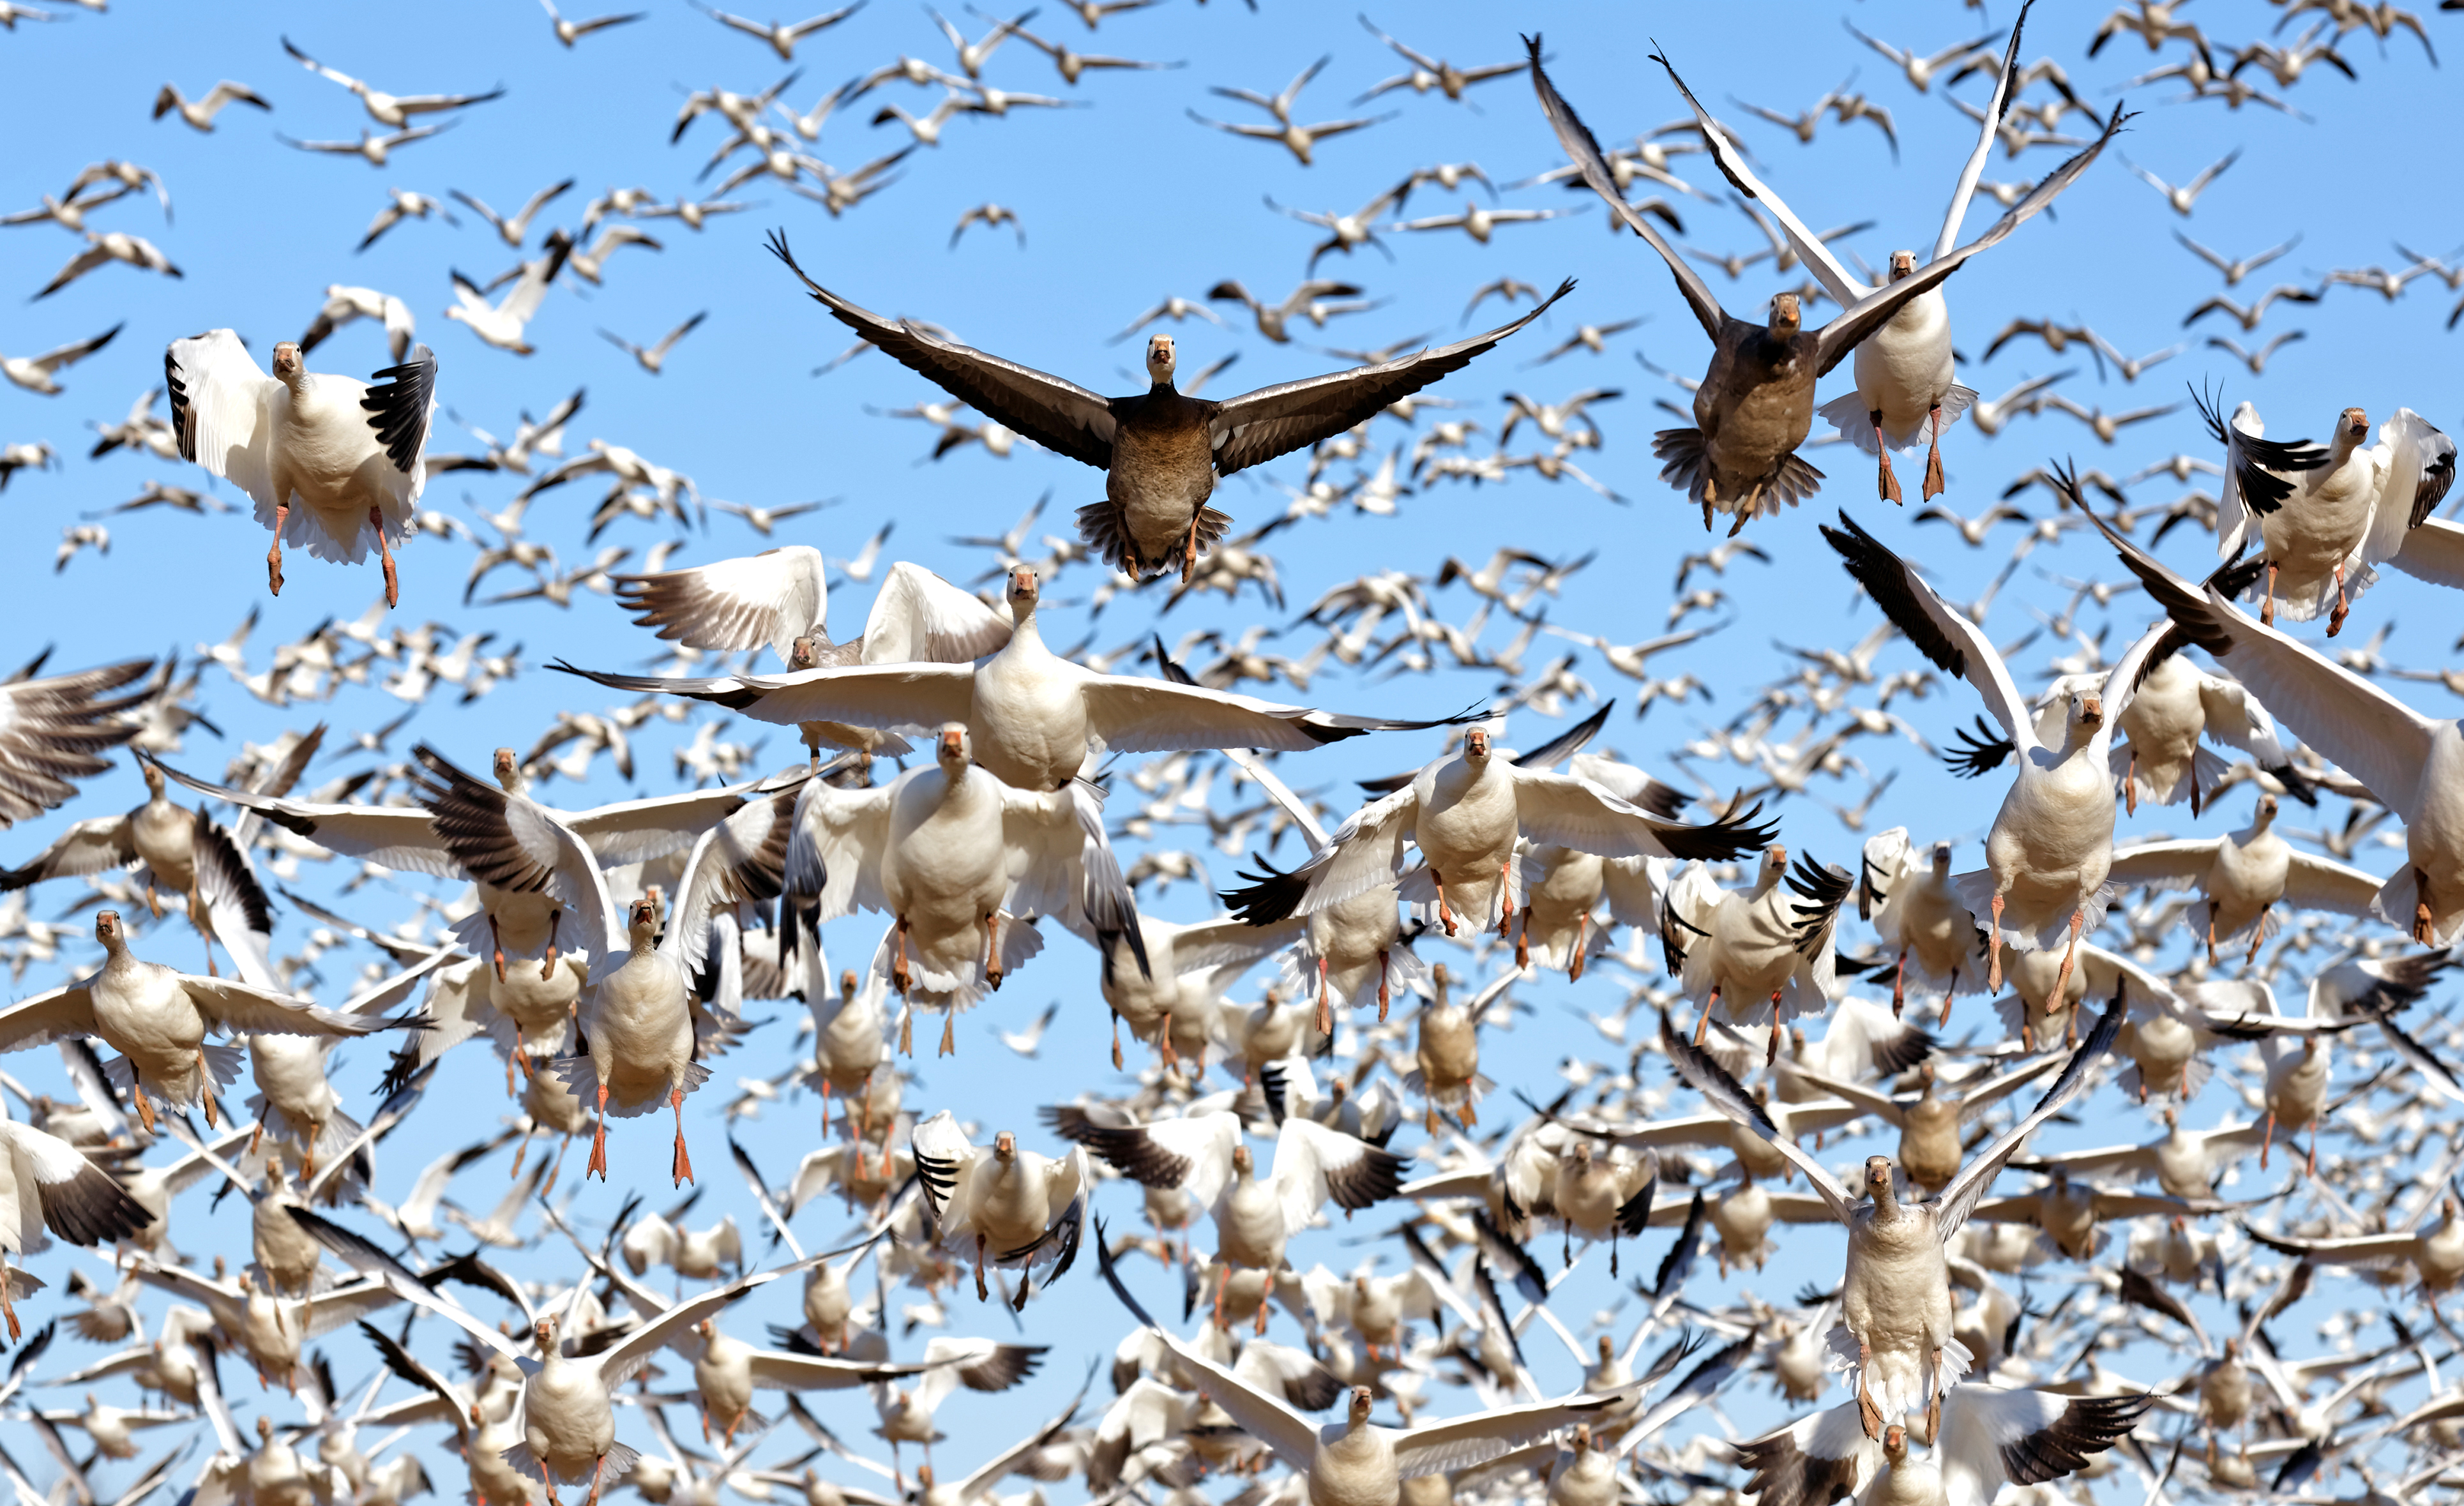 Light goose numbers — specifically lesser snow geese — have increased dramatically the past few decades, prompting biologists to open spring conservation-order seasons for them. Photo © Delmas Lehman/Shutterstock